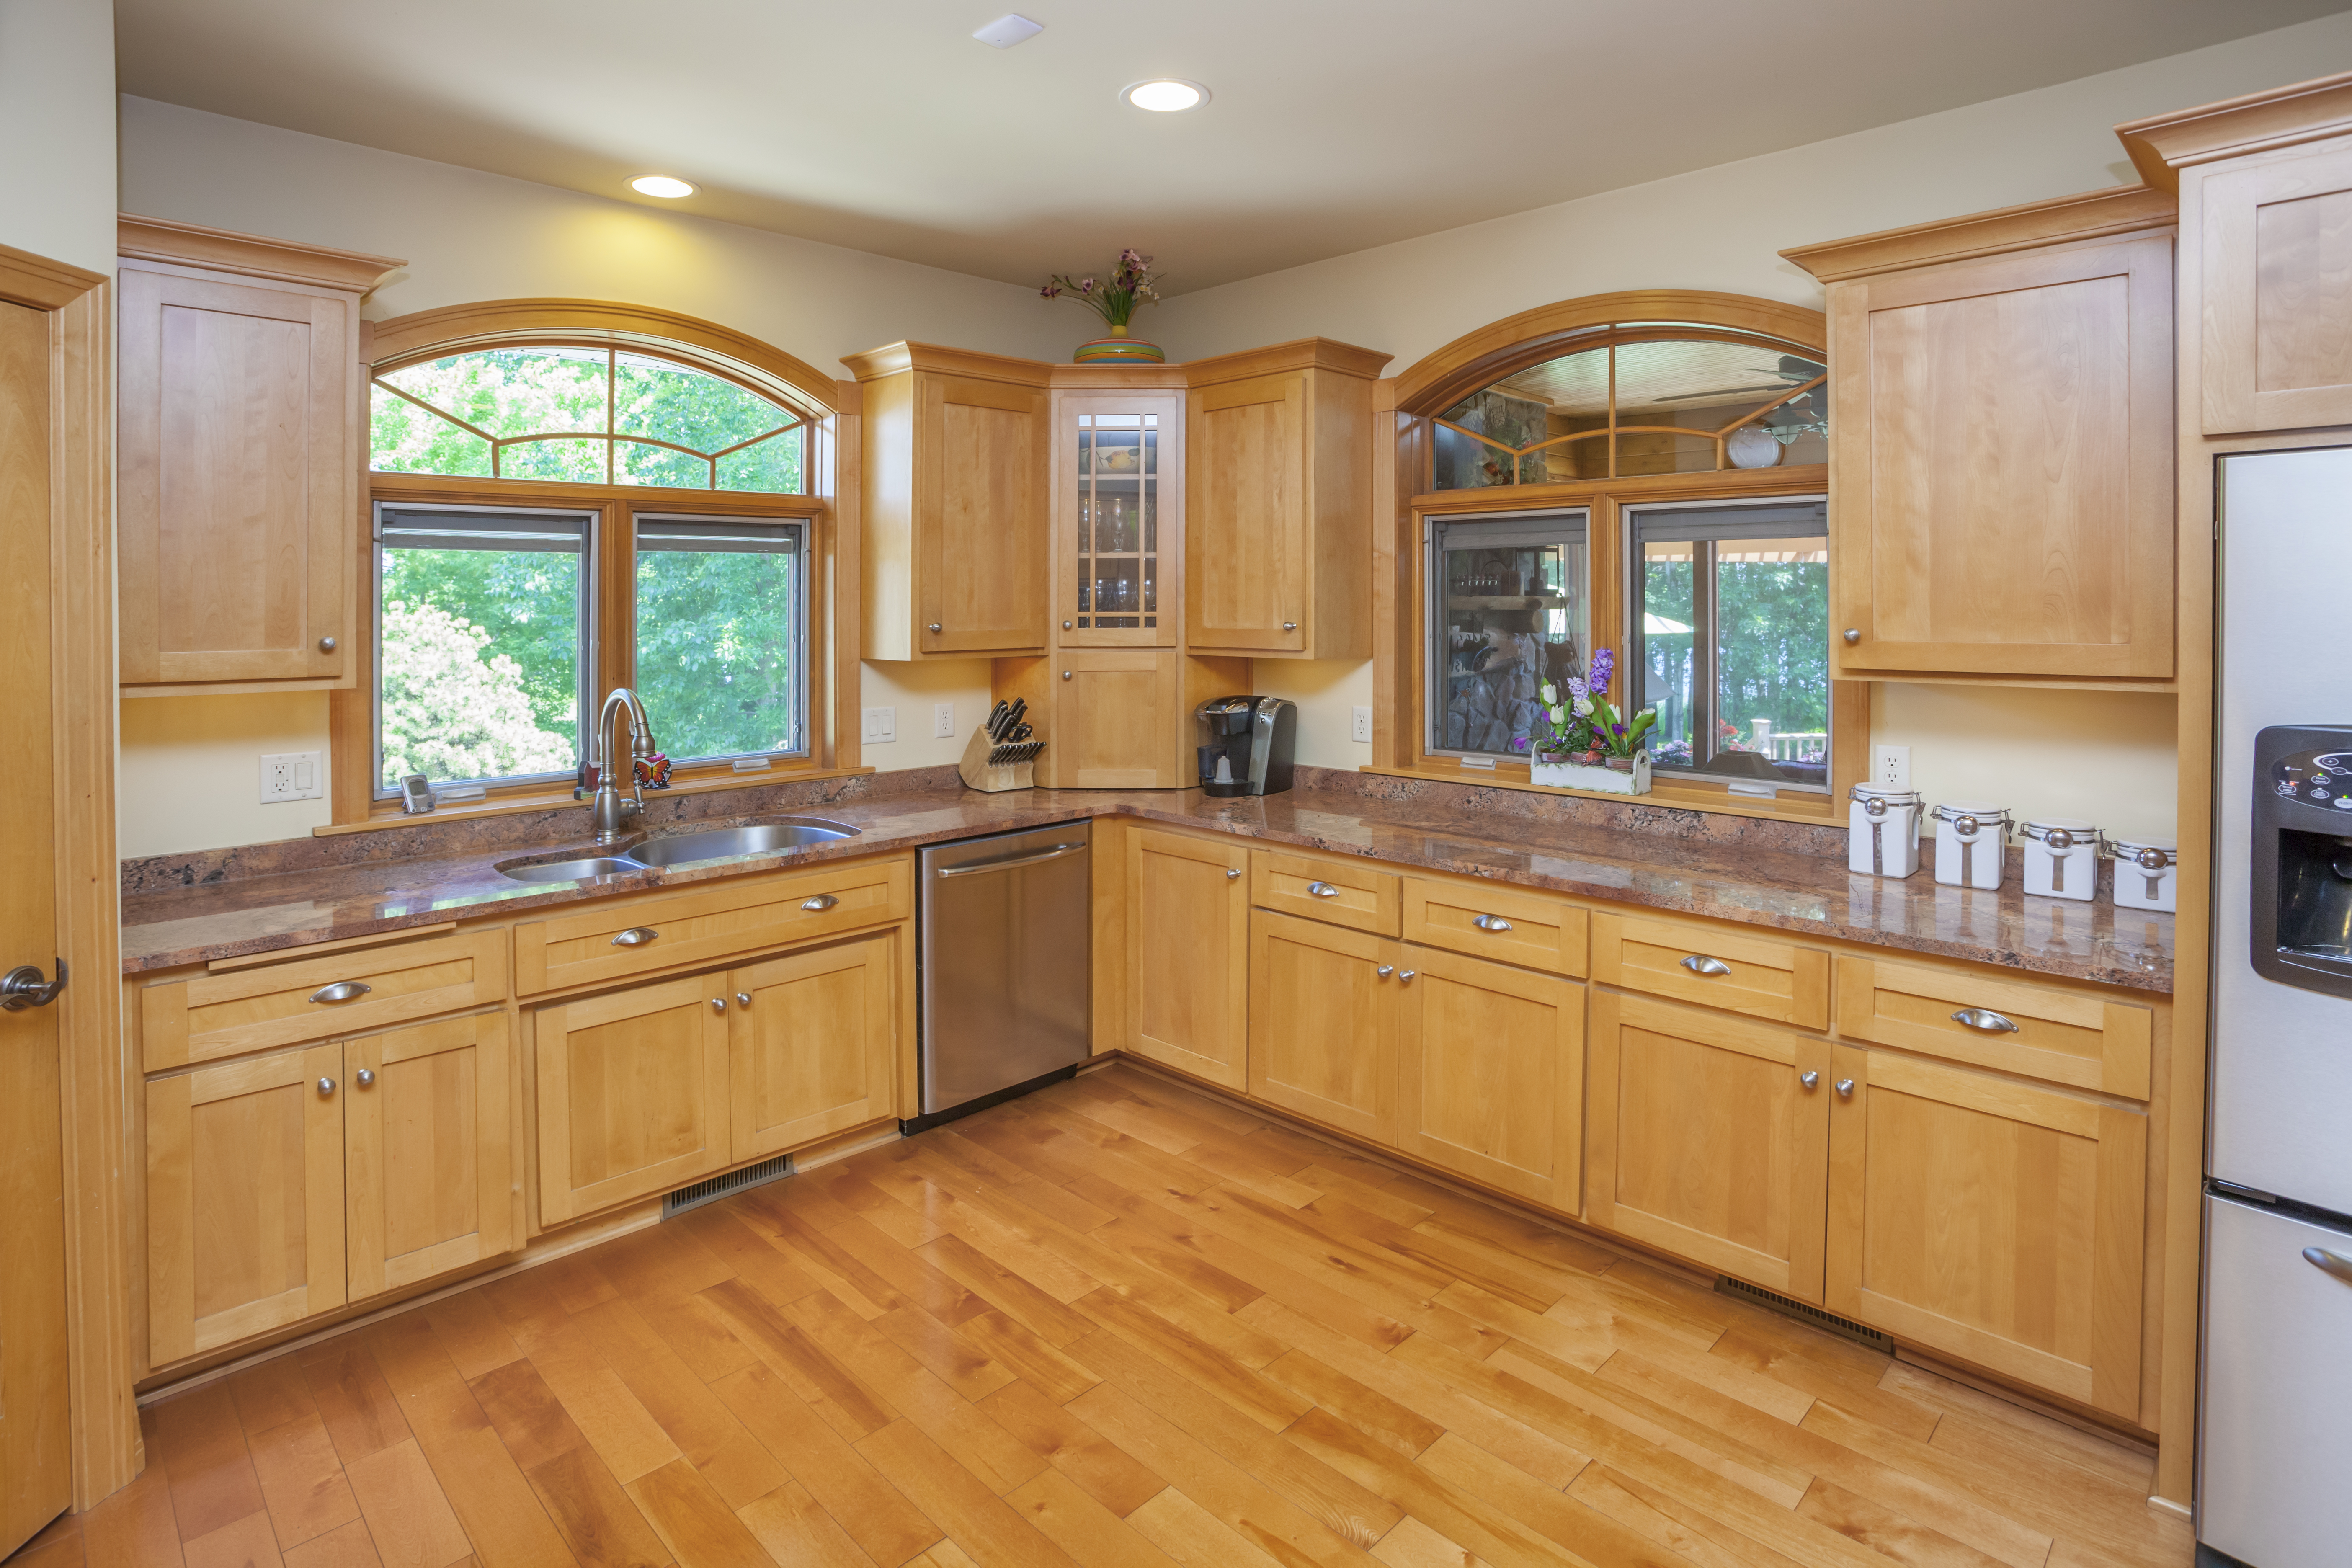 What Wall Color Goes With Oak Floors - Zion Star on What Color Granite Goes With Maple Cabinets  id=85949